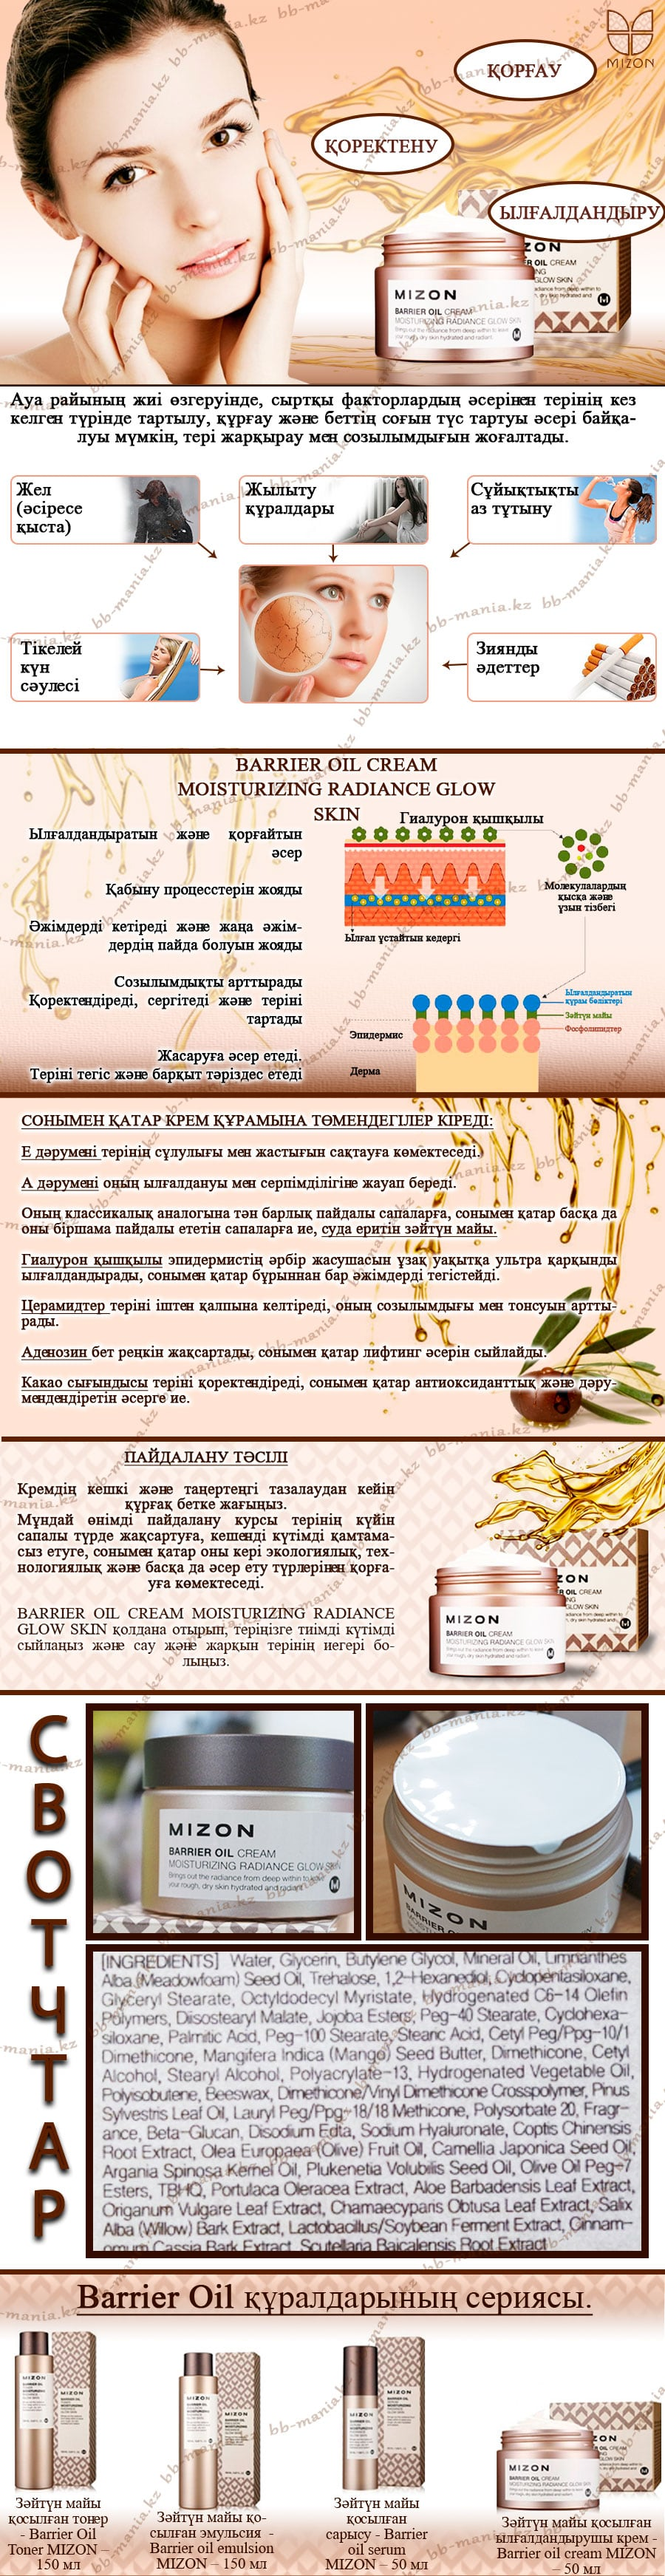 Barrier-Oil-Cream-Moisturizing-Radiance-Glow-Skin-[Mizon]-кз - копия-min